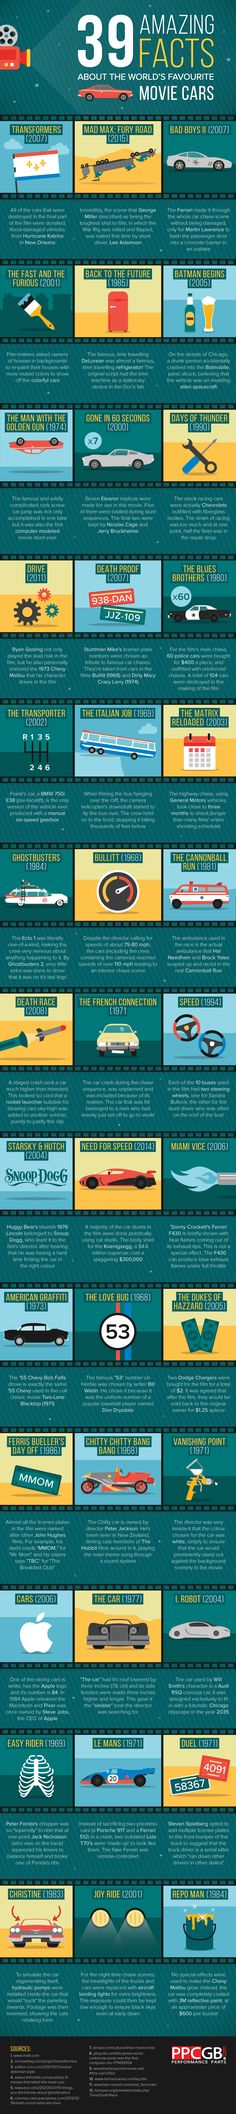 39 Amazing Facts About the World's Favourite Movie Cars #Infographic #Cars #Facts #Entertainment